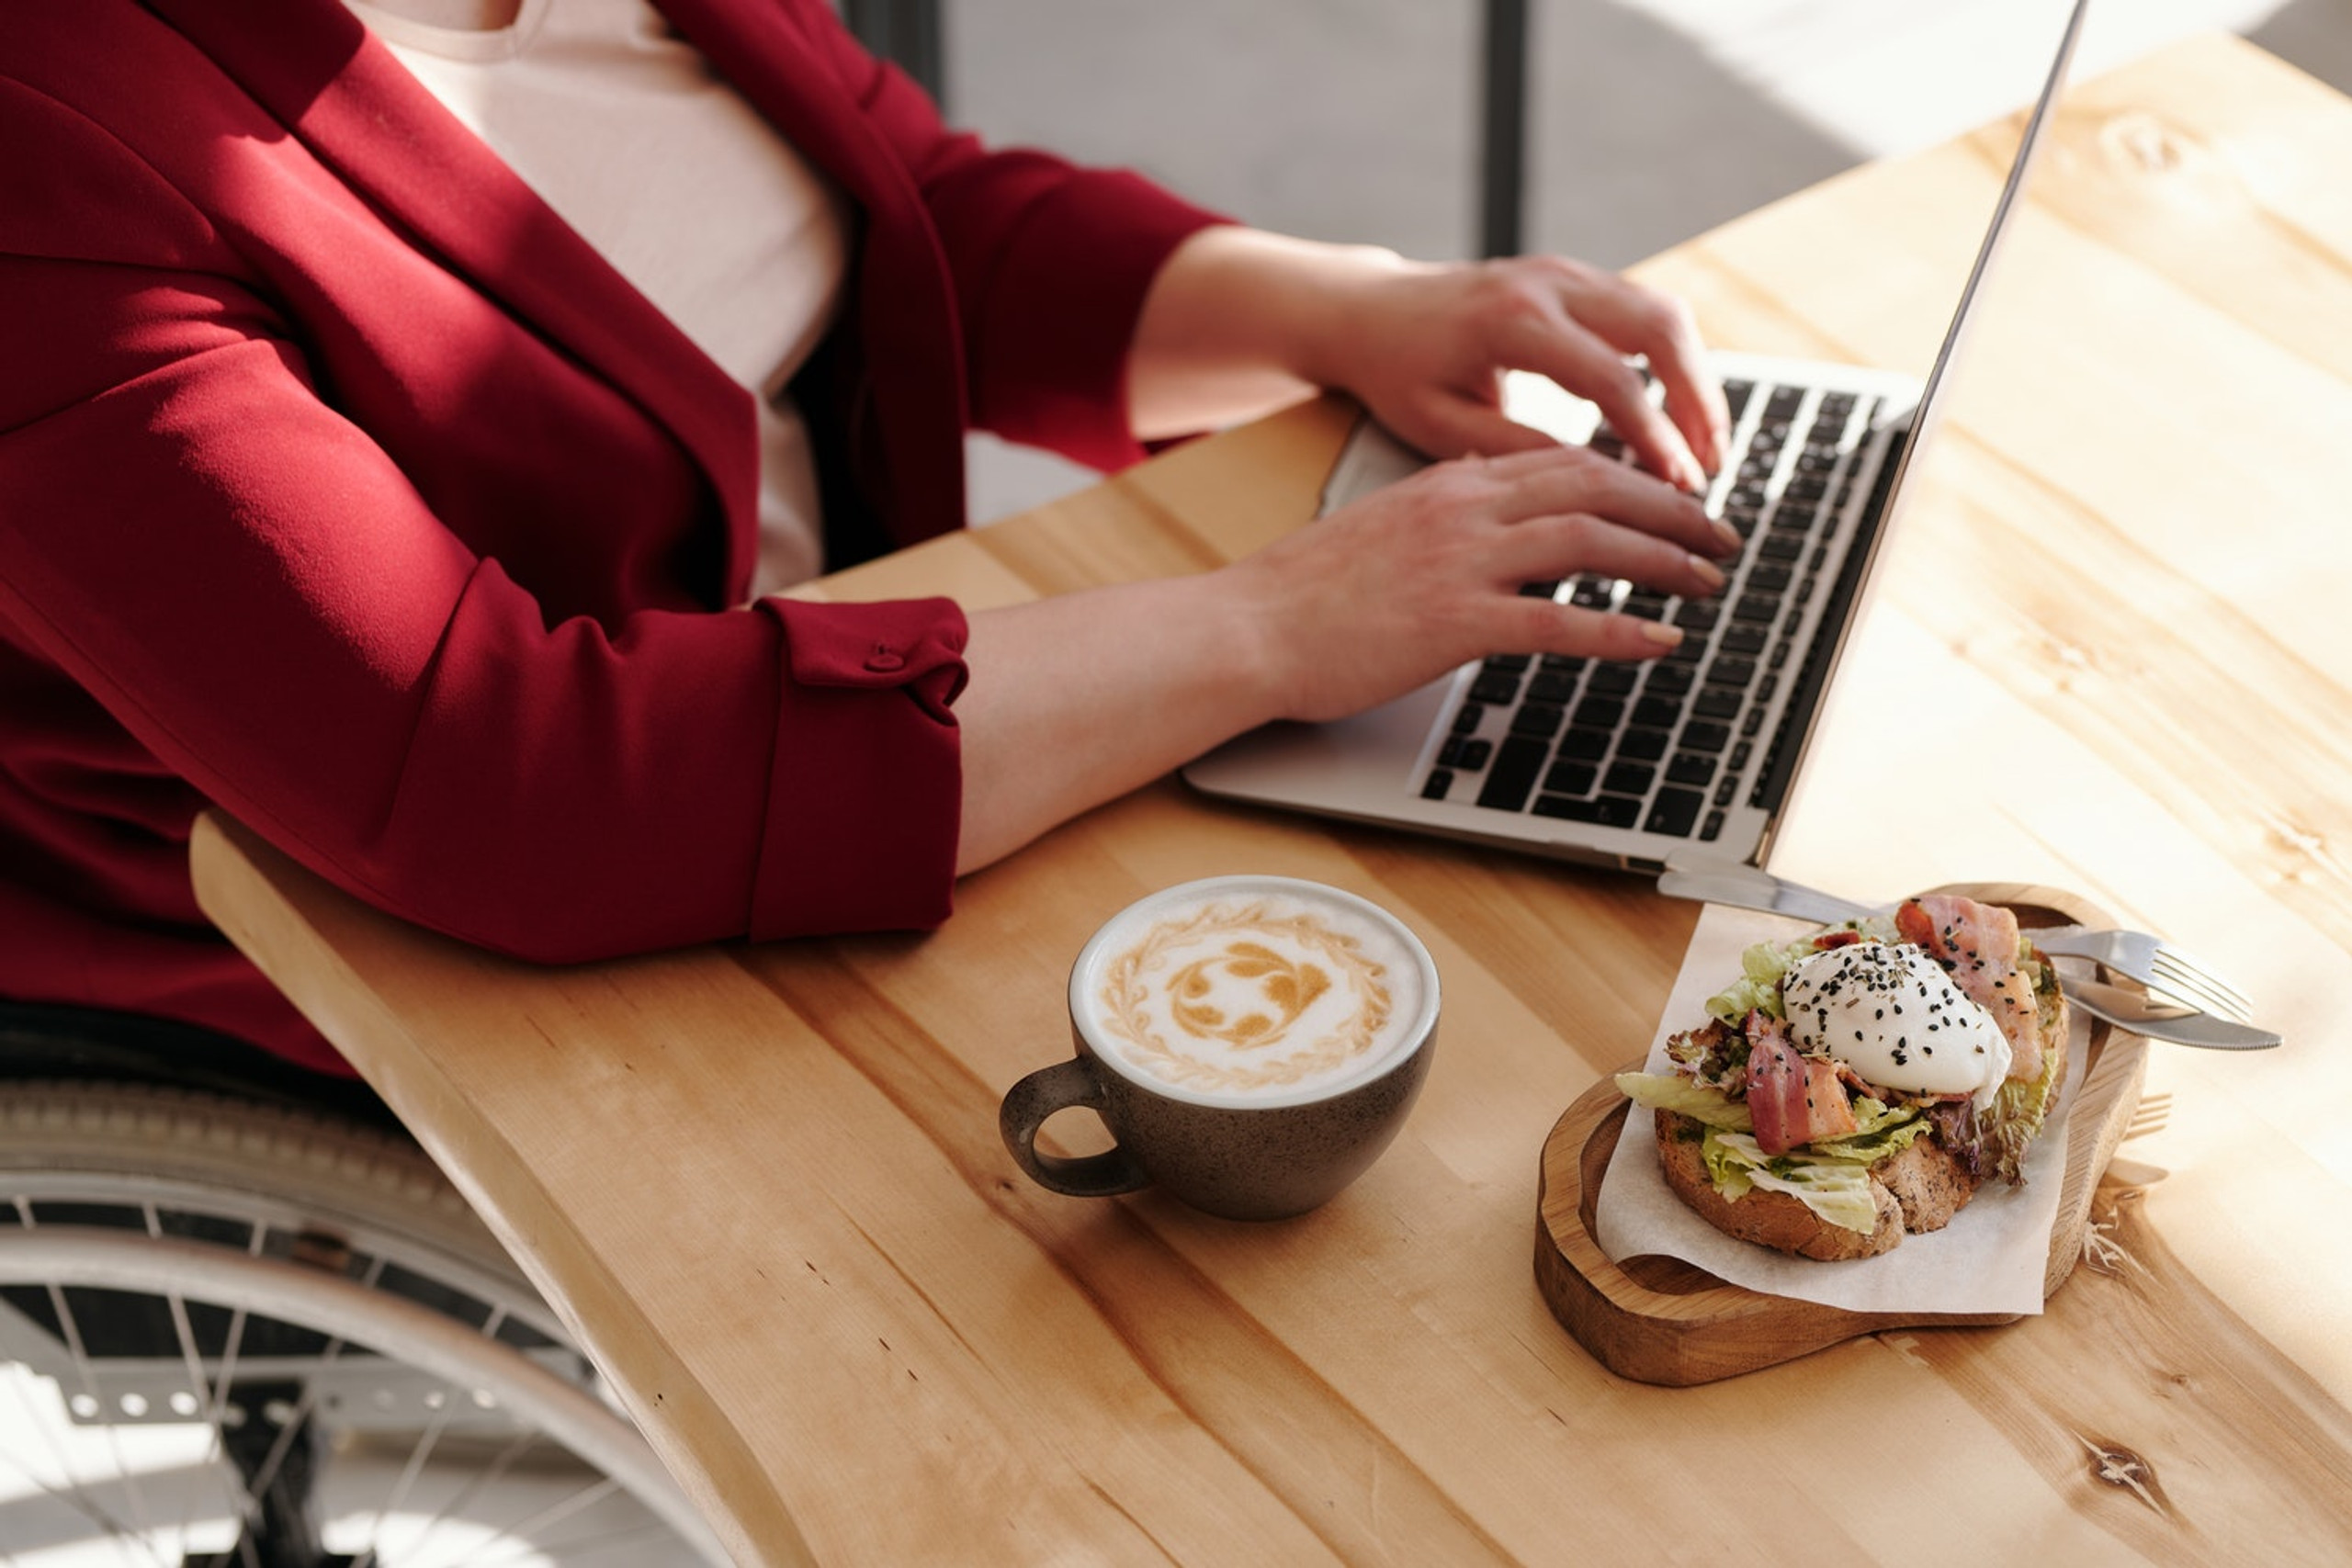 Planning Your Work Week Lunches